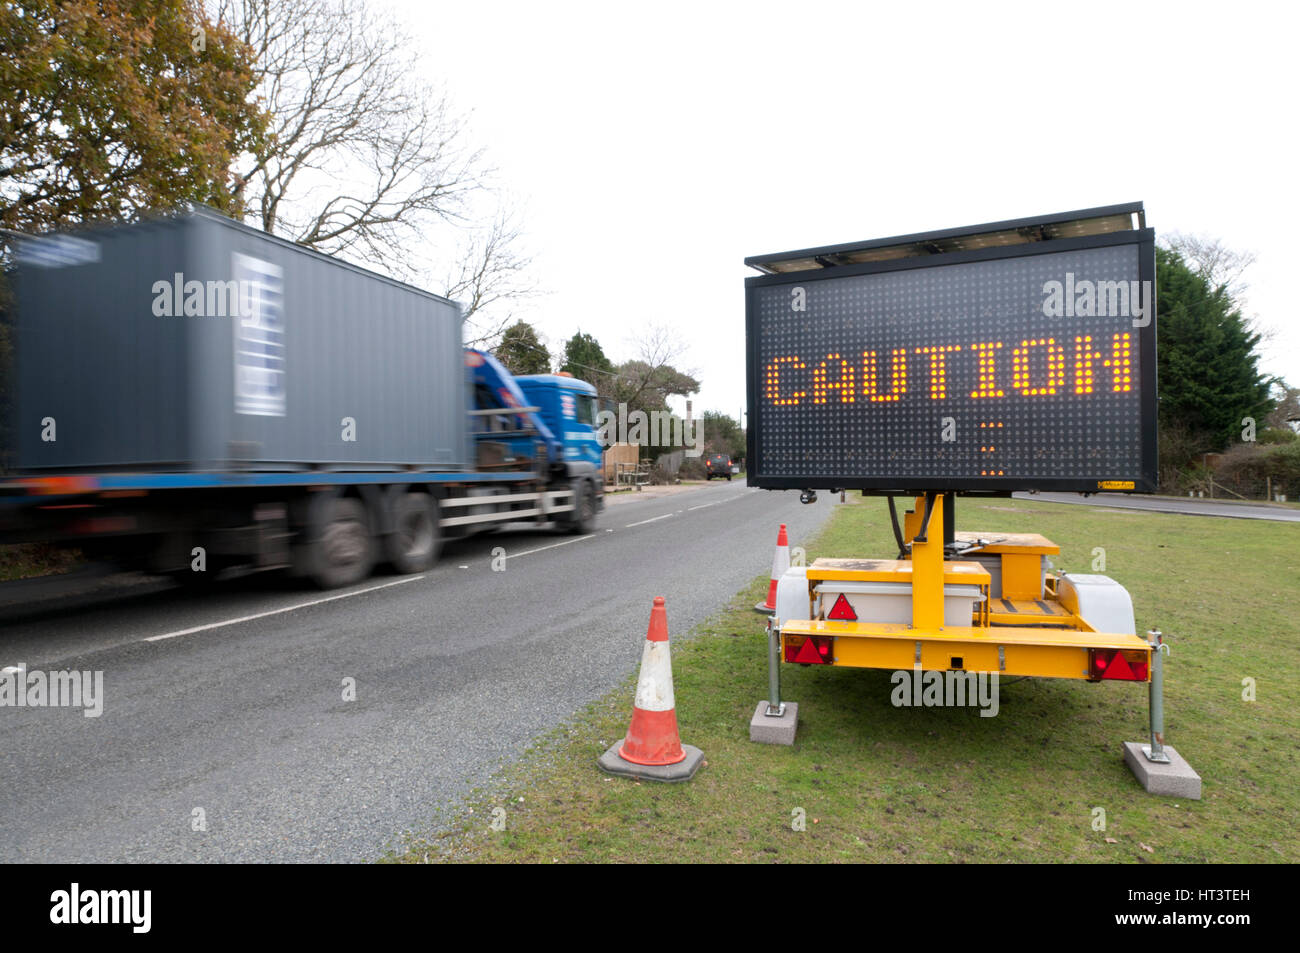 Mobile road matrix sign - Stock Image